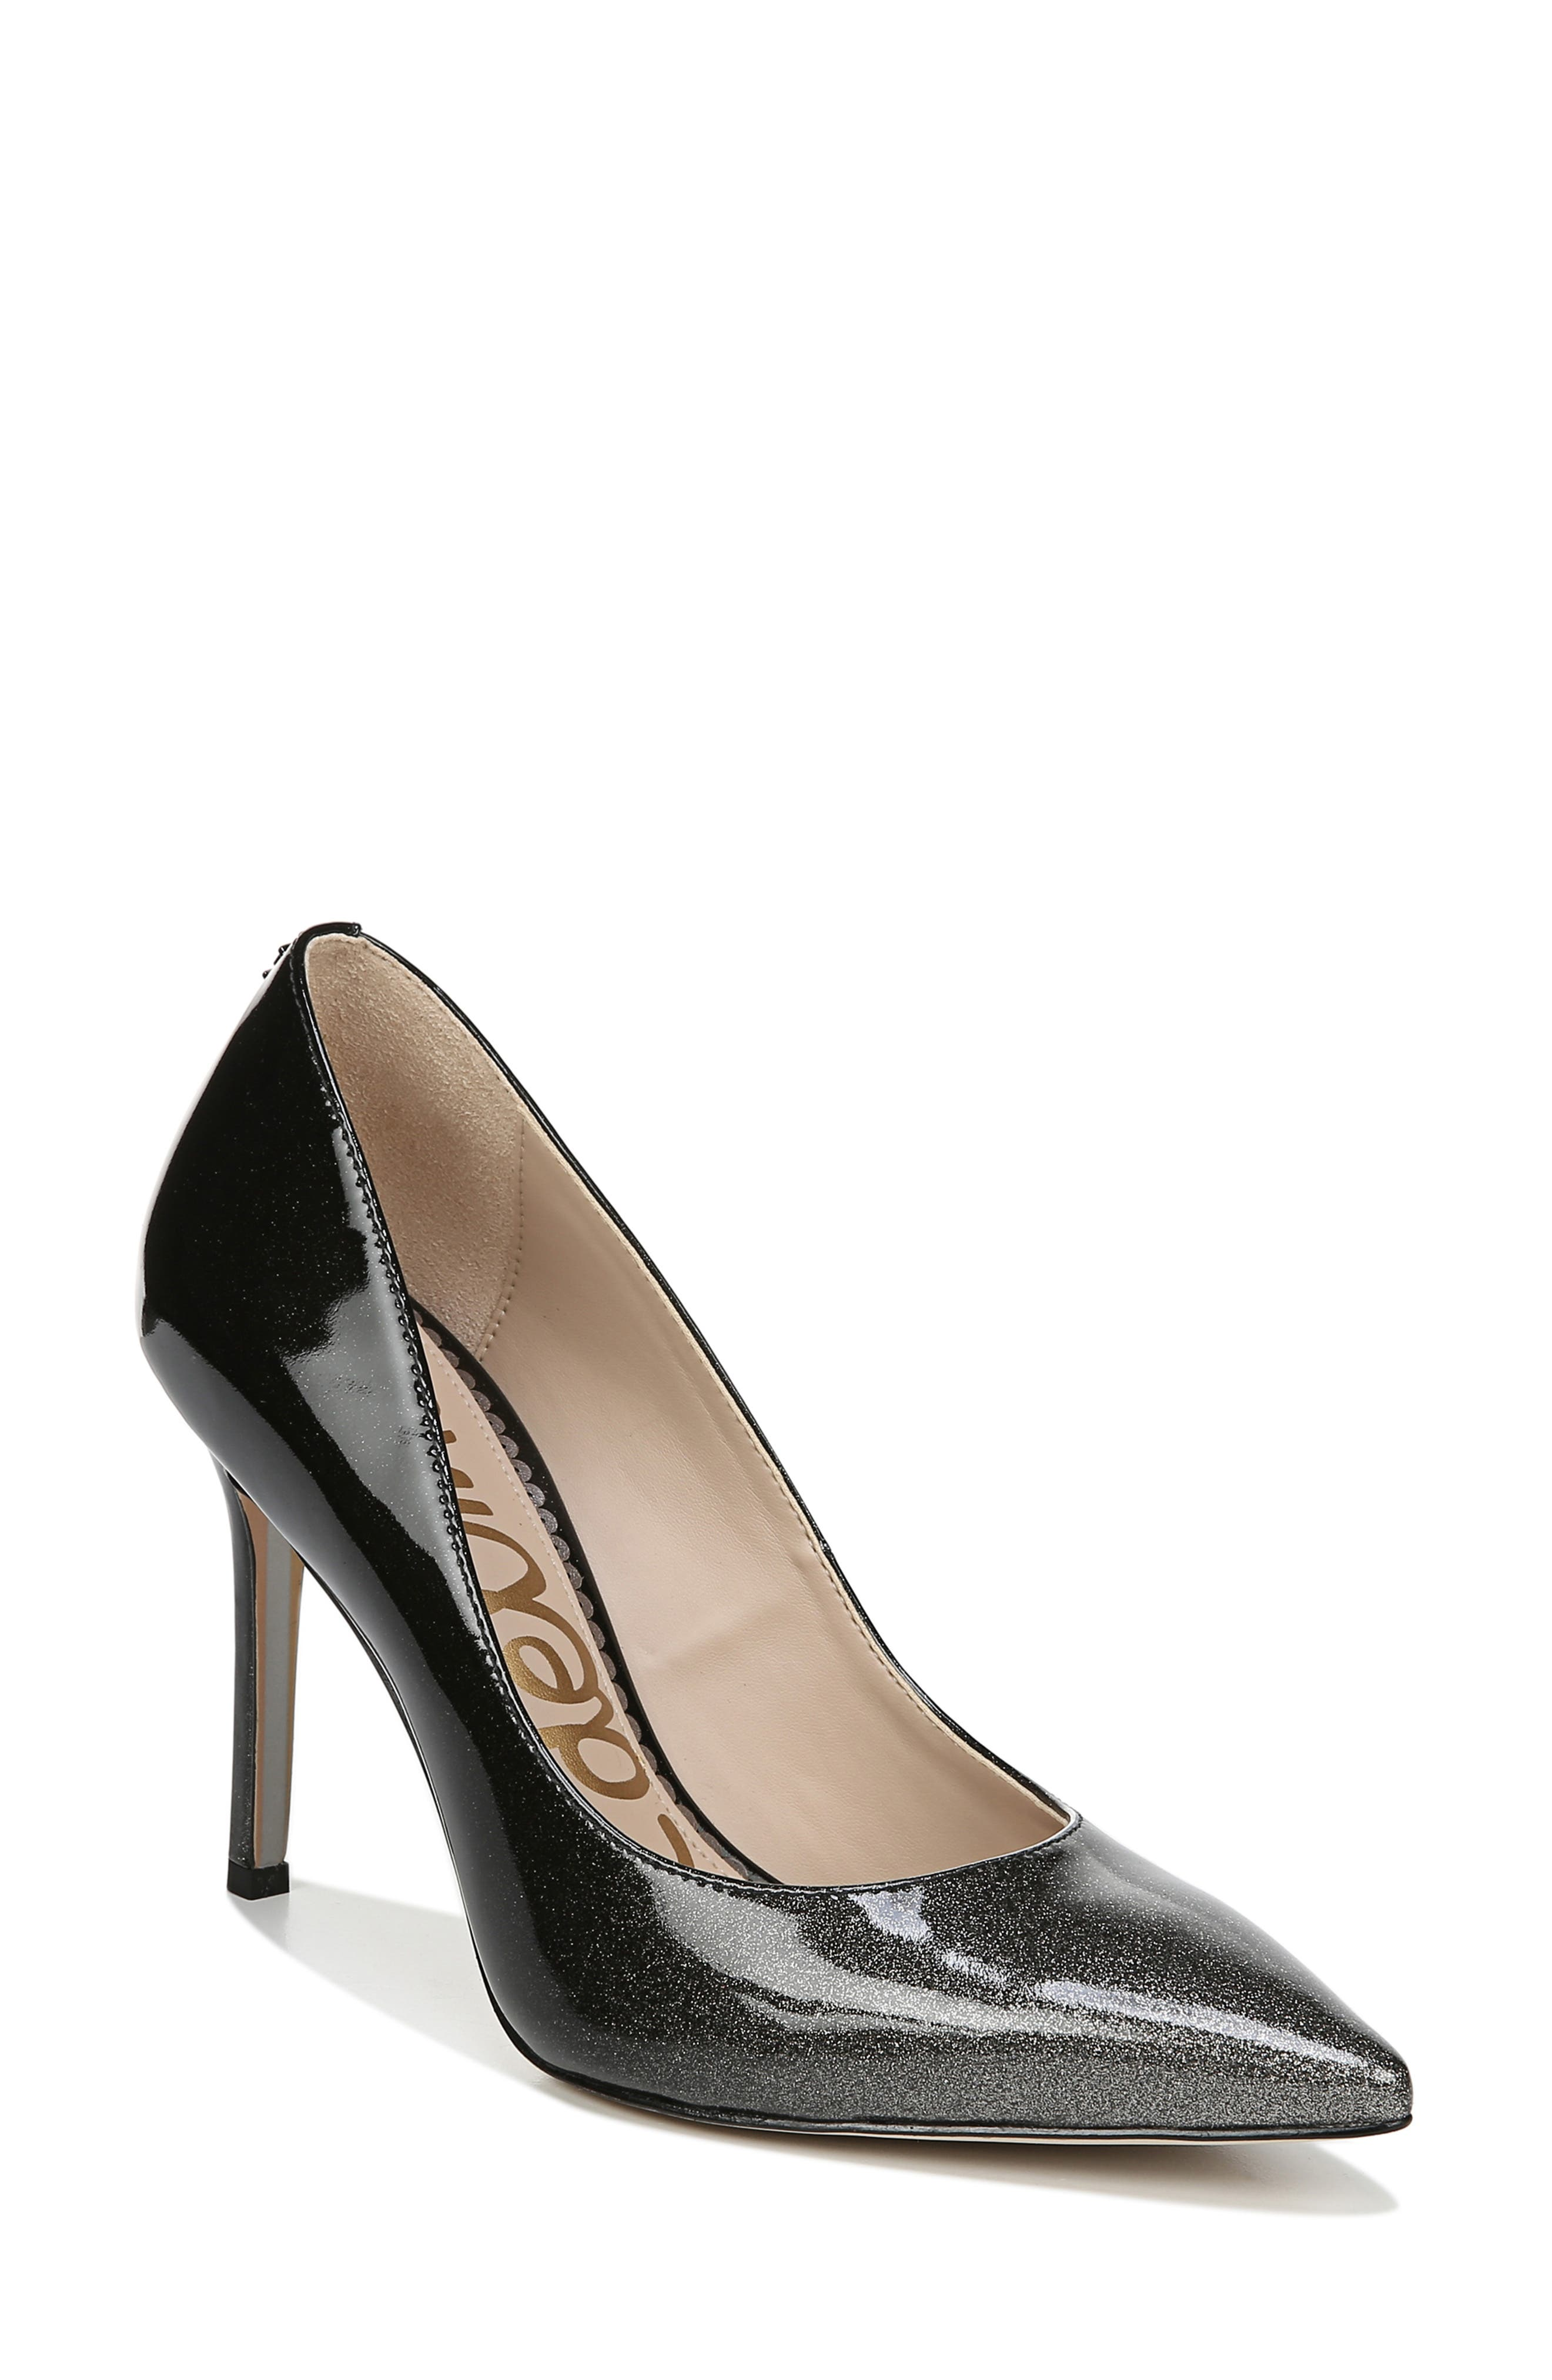 SAM EDELMAN Hazel Pointy Toe Pump, Main, color, BLACK/ SILVER